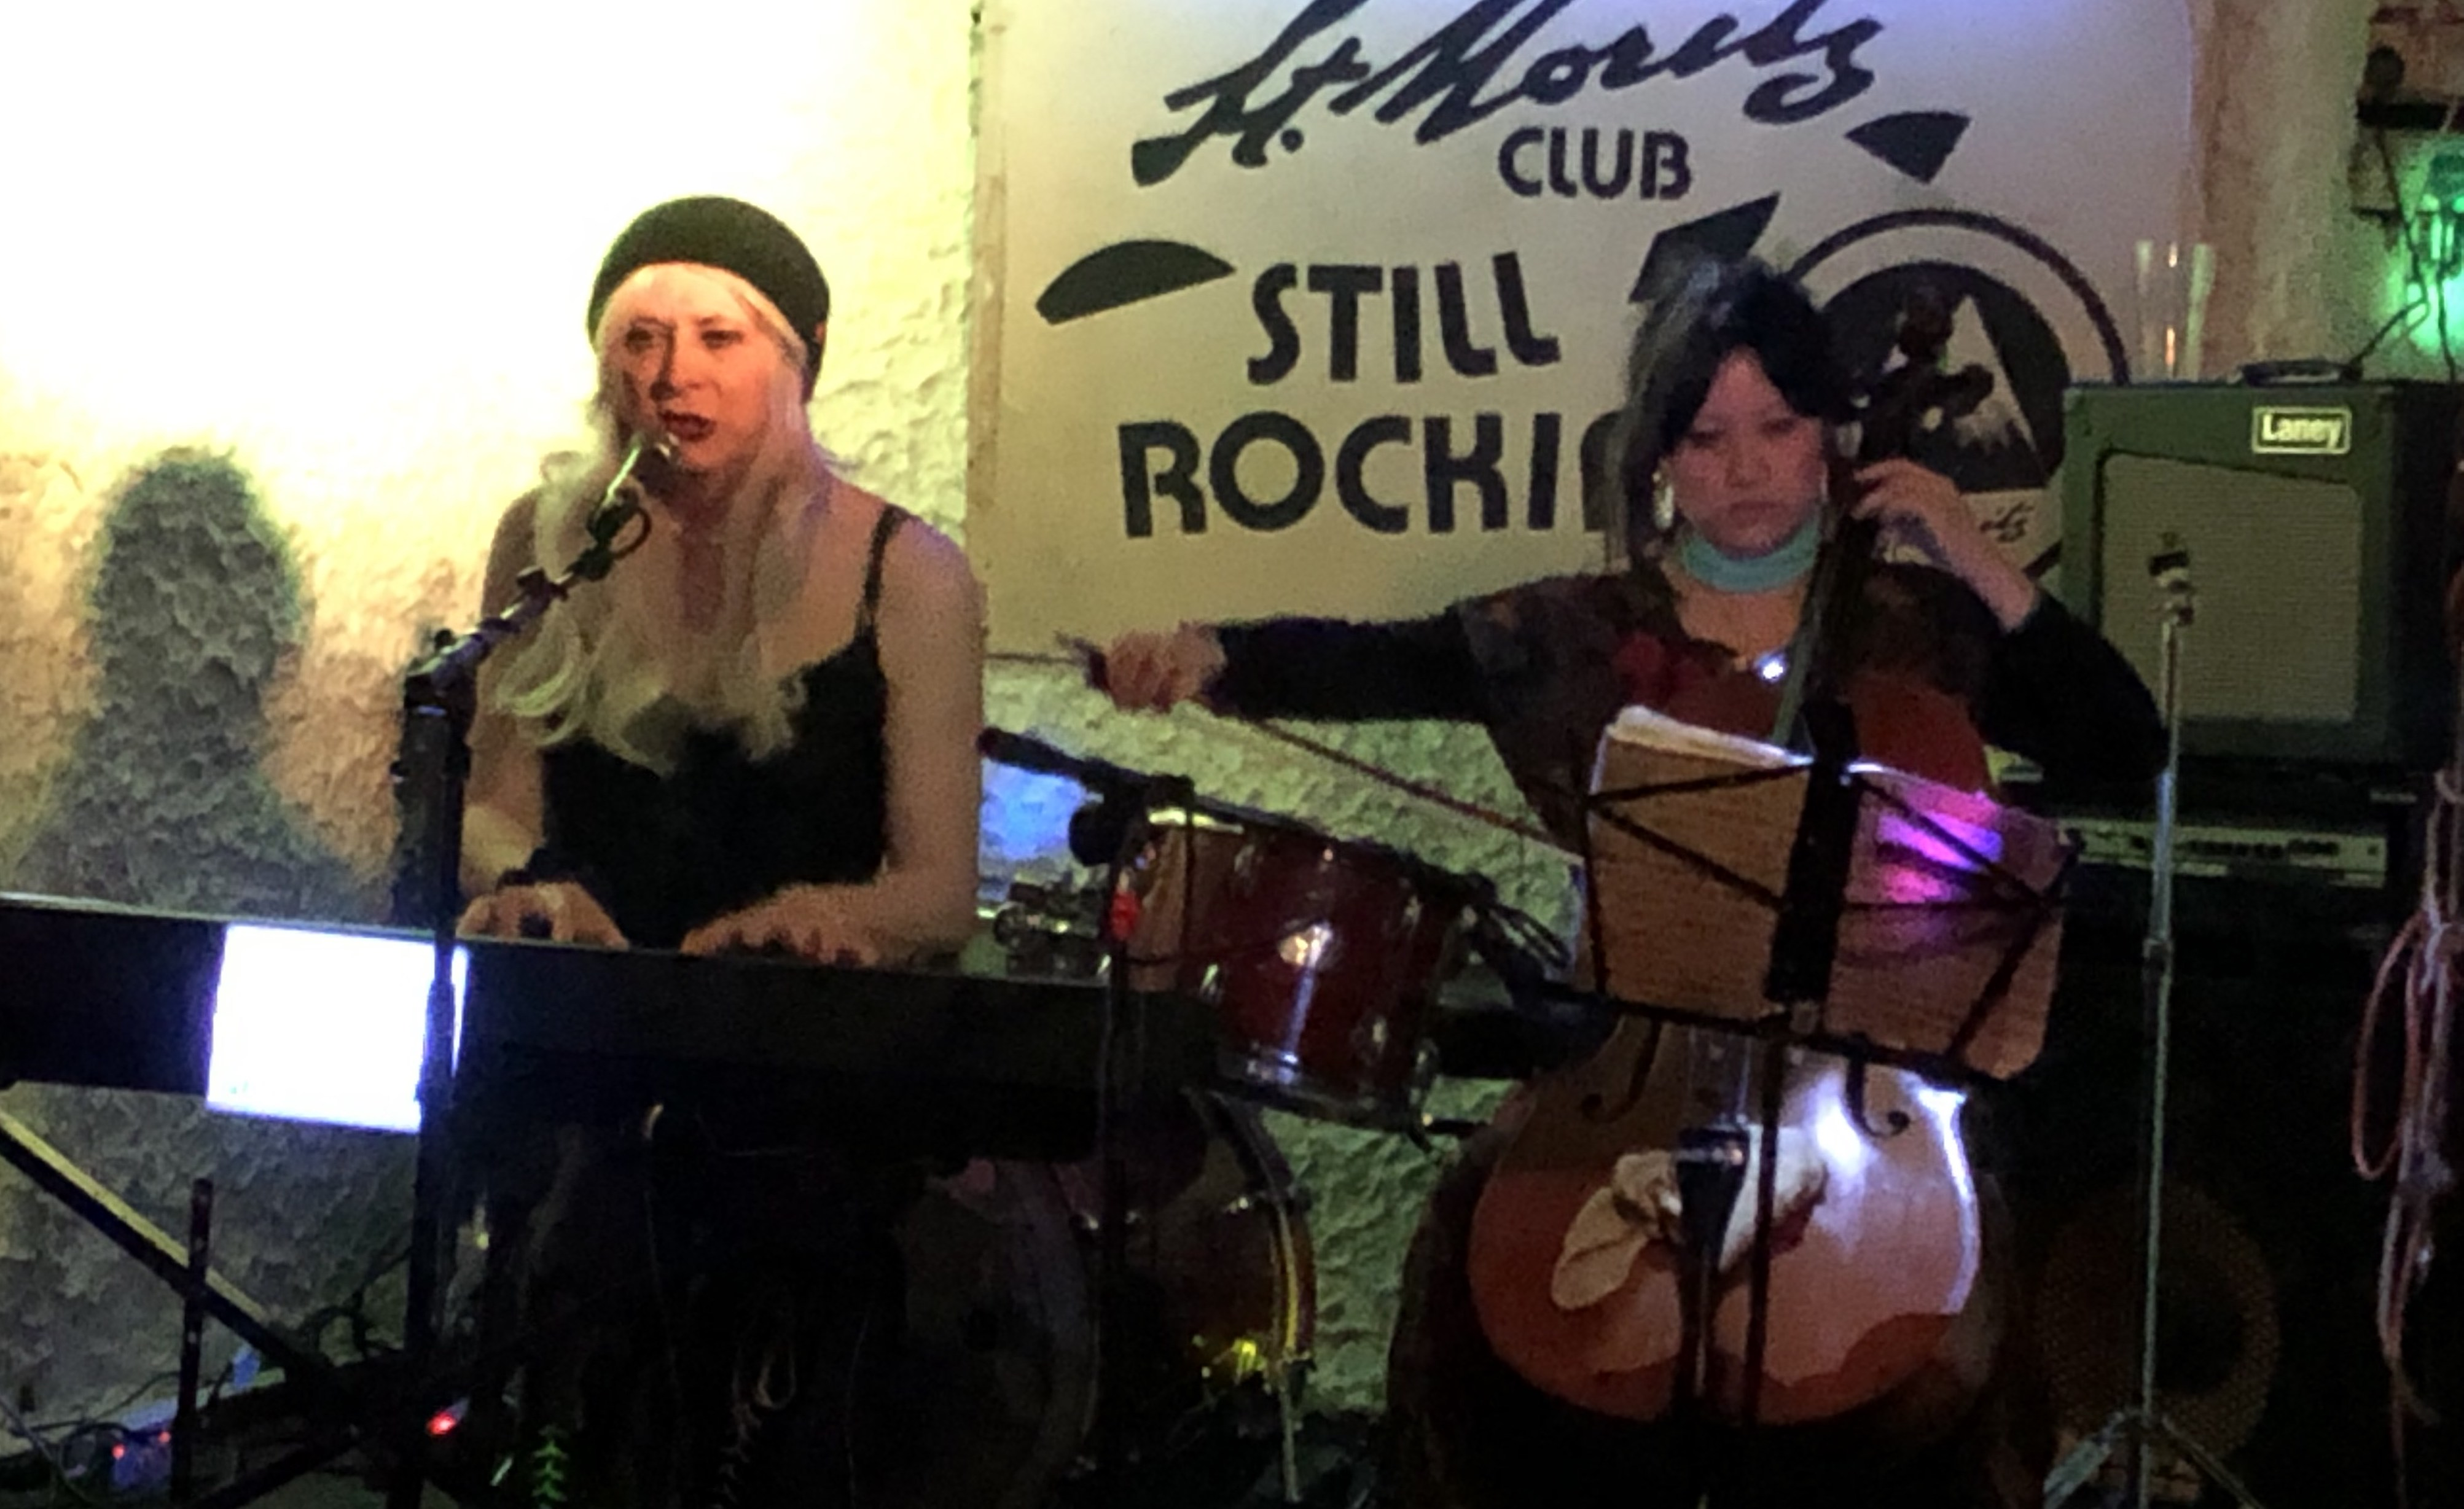 Juliet & Nanette performing at the St Moritz Club, 9 Mar 2019